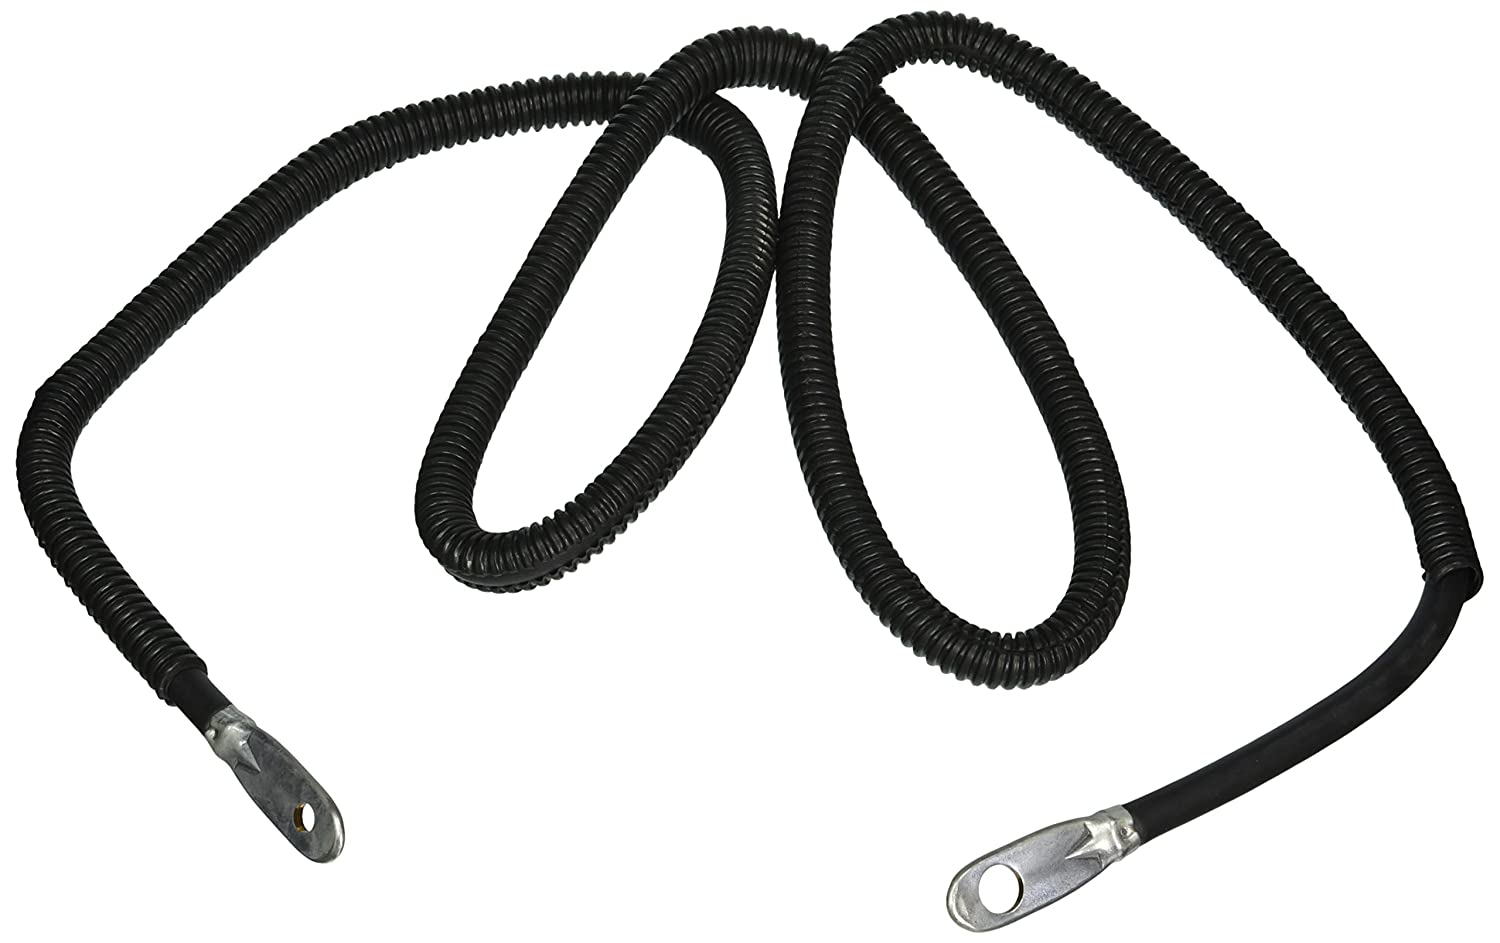 Standard Motor Products A60-4LF Battery Cable A60-4LF-STD